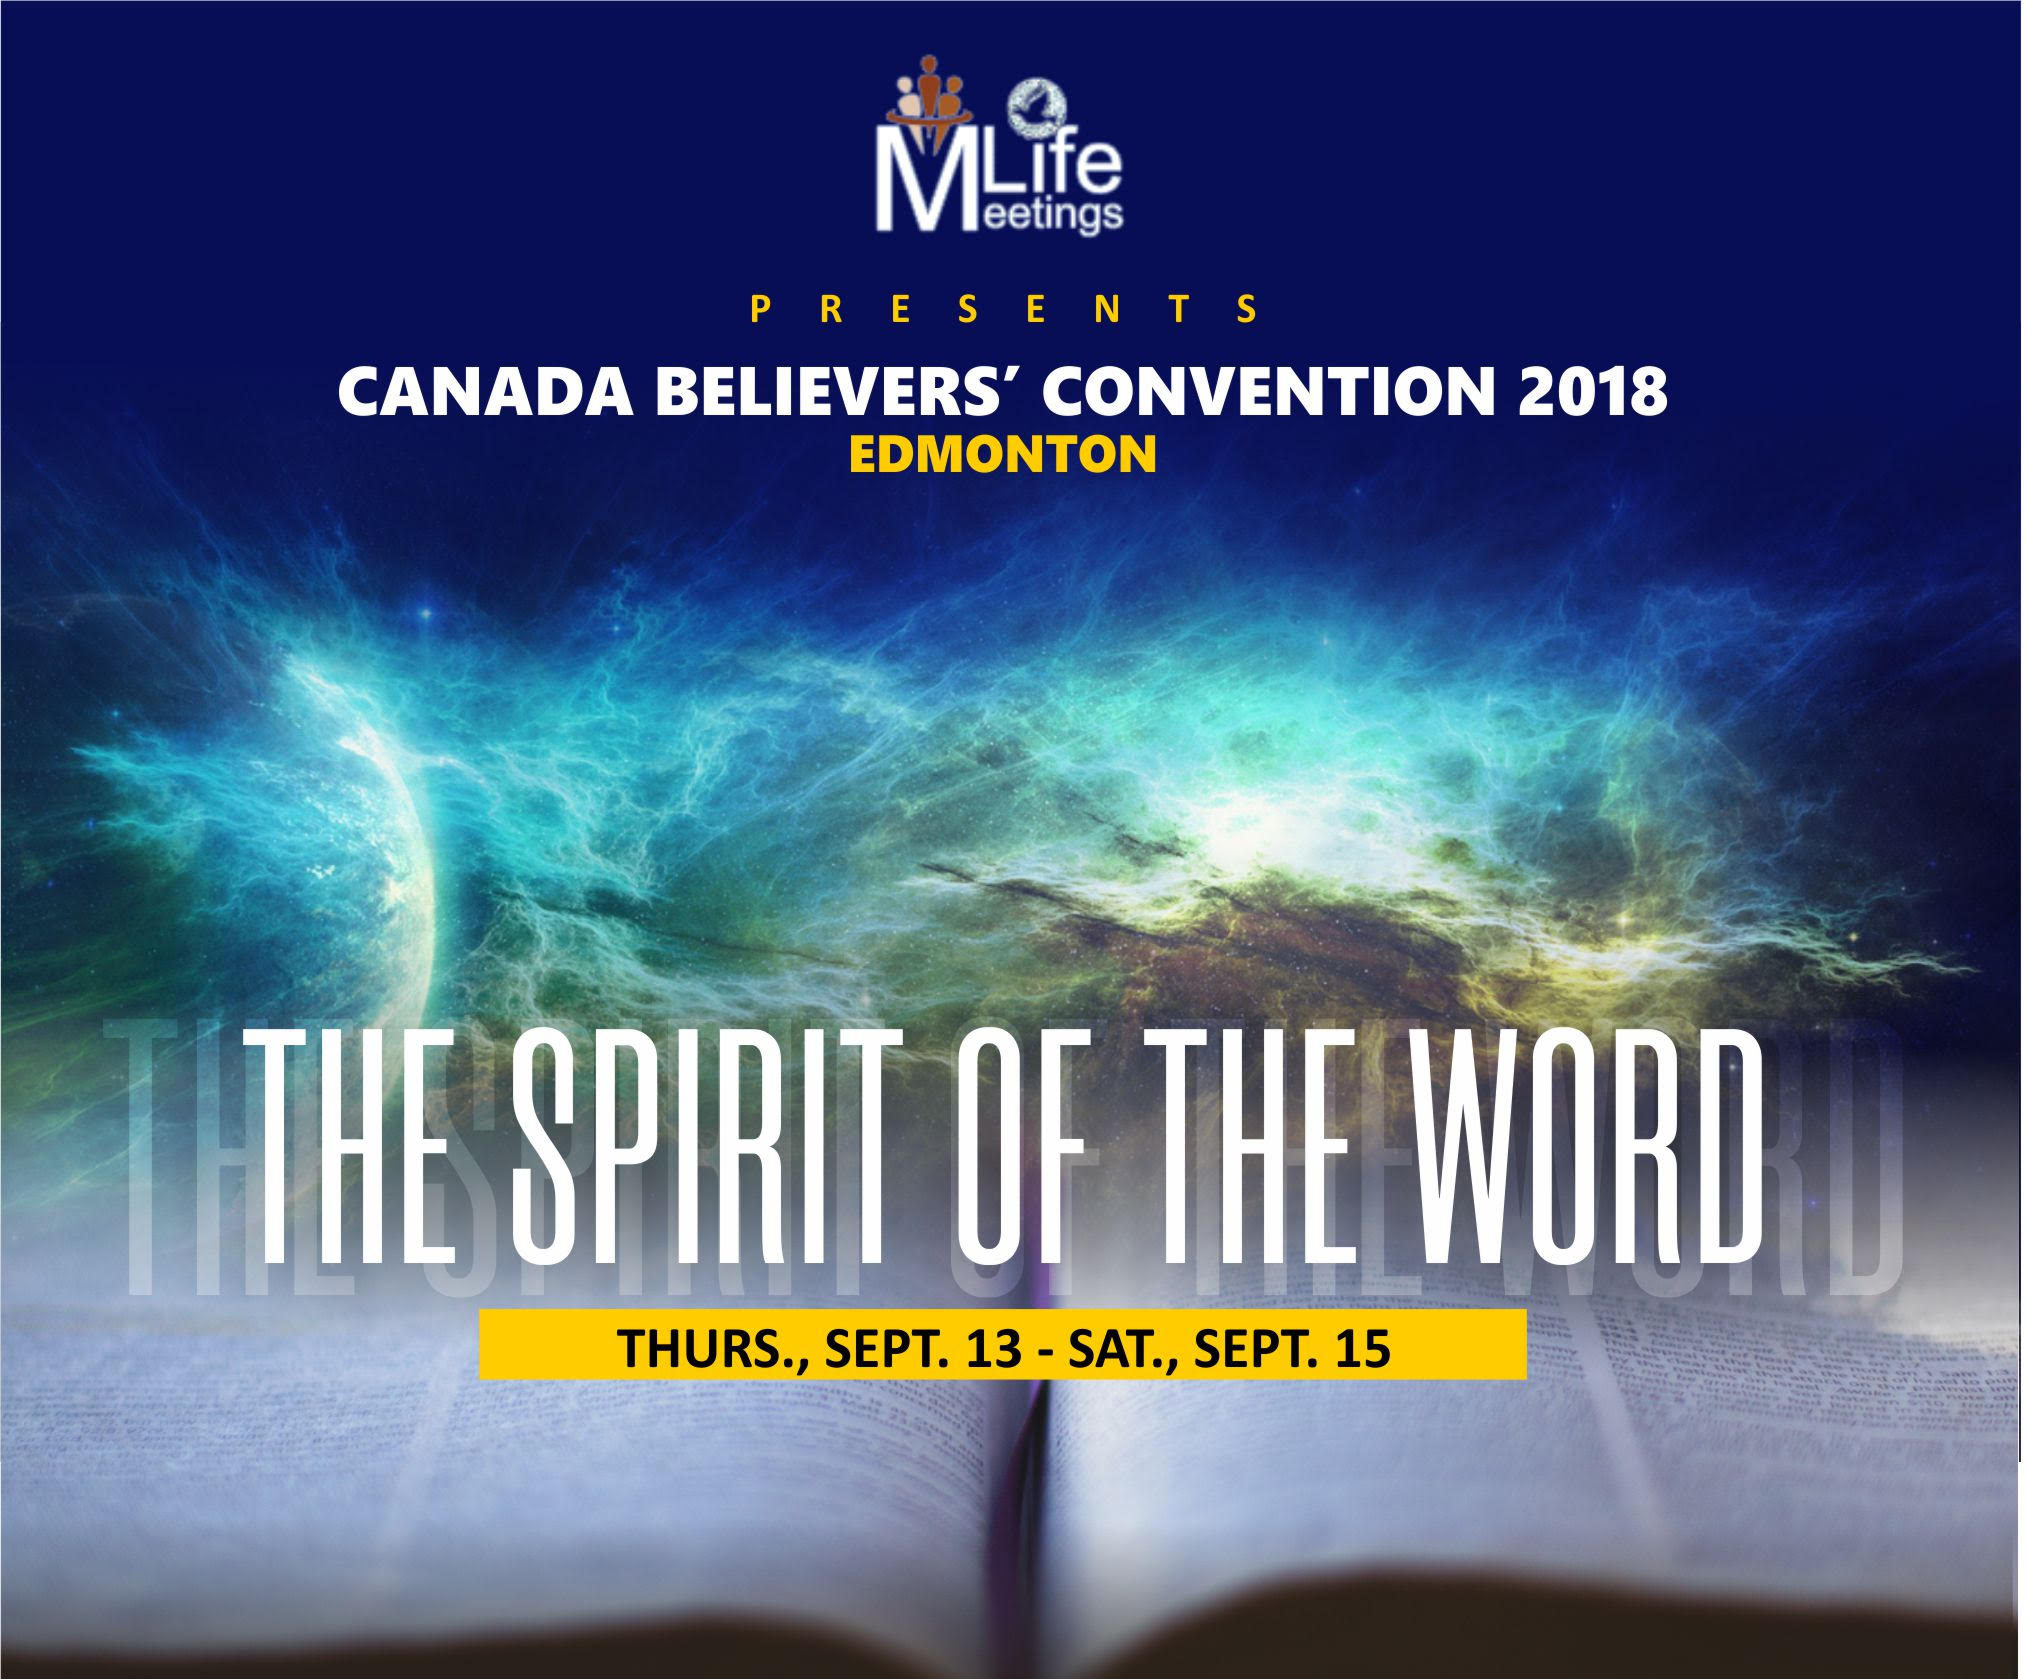 The Spirit of The Word